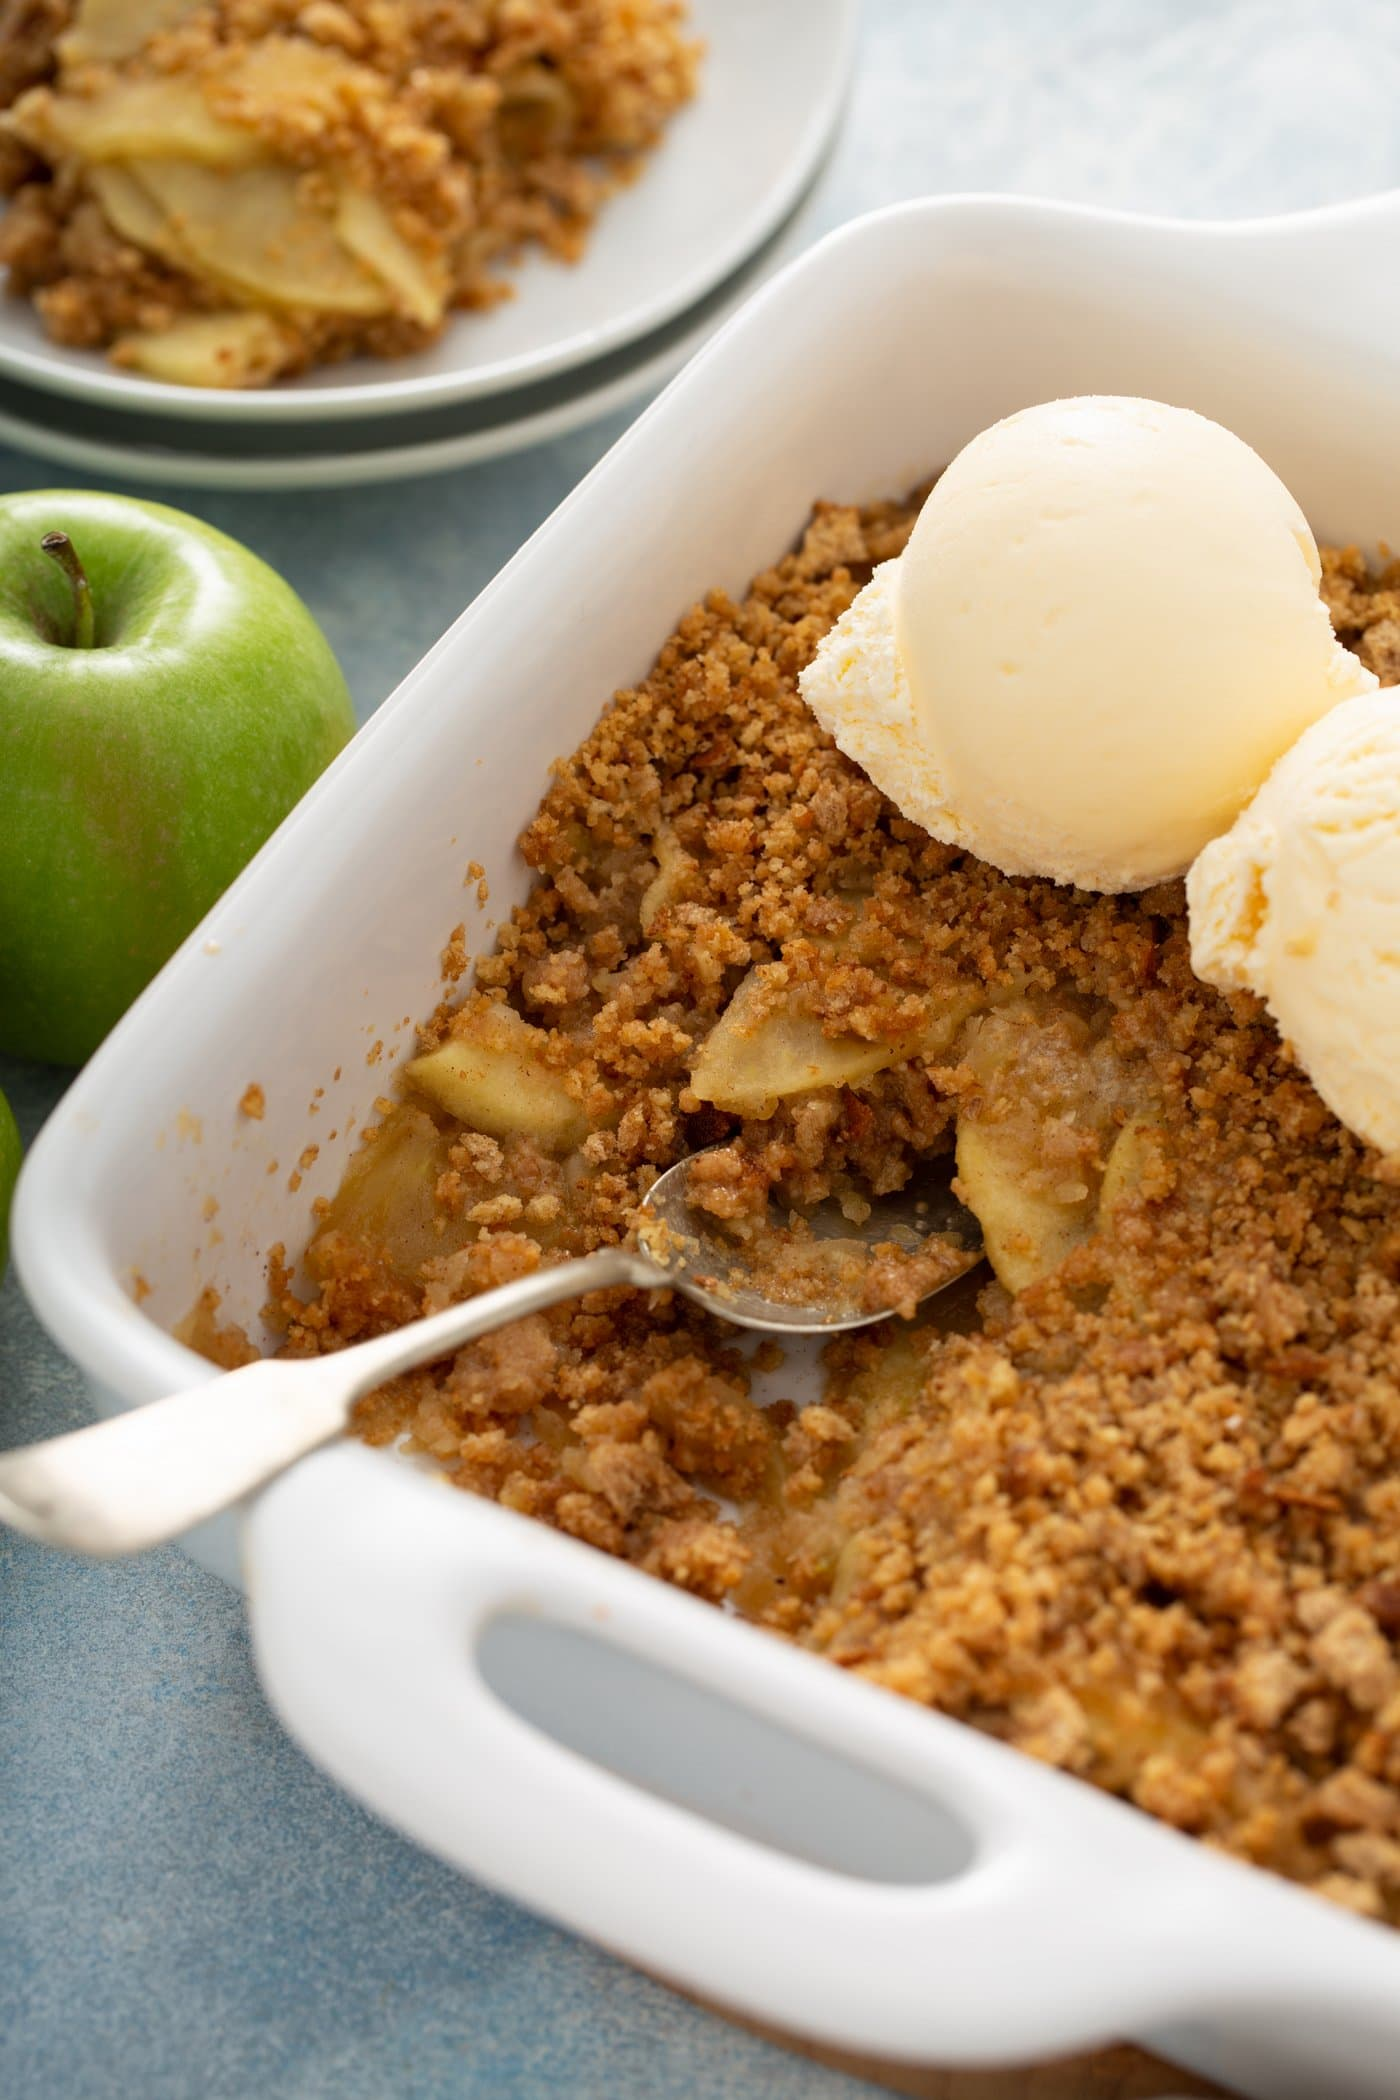 A white baking dish filled with apple brown betty. A serving spoon is in the dish and there are two scoops of vanilla ice cream on top of the apple brown Betty. An apple is next to the dish and there are dessert plates in the background.